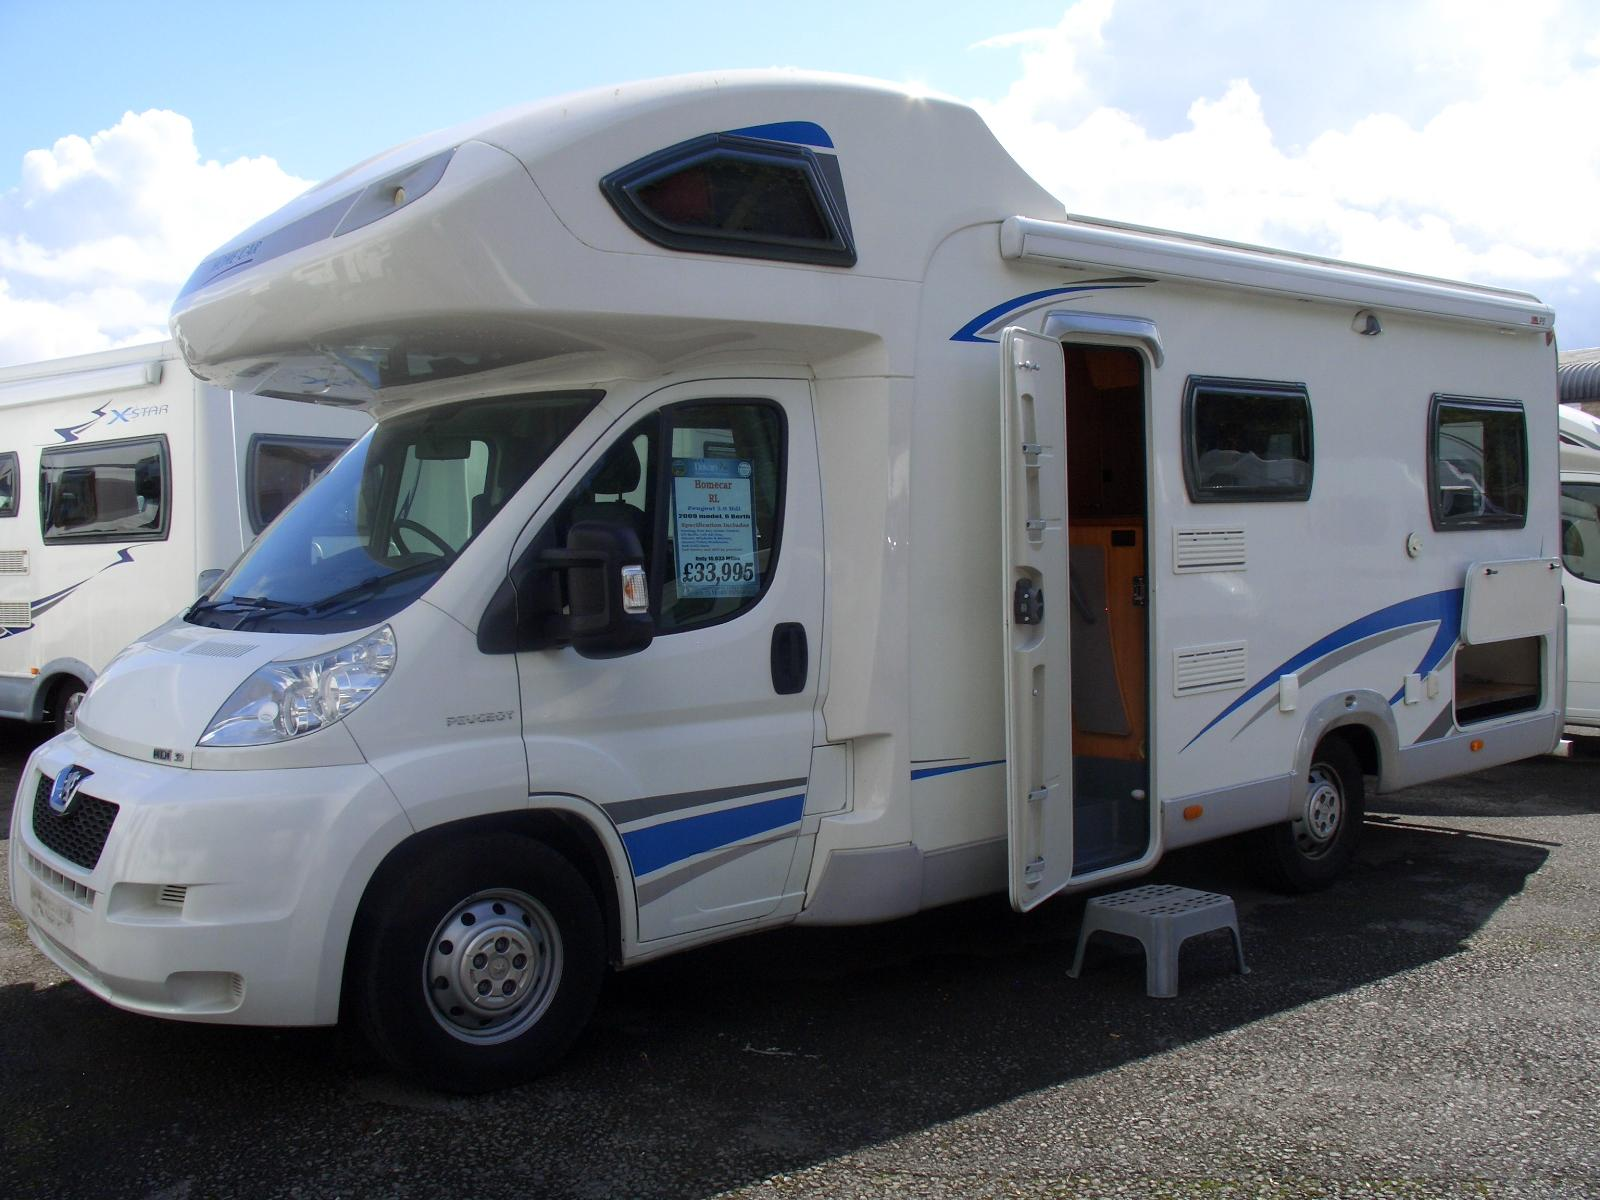 Homecar Rl 2009 6 Berth Motorhome For Sale From Davan